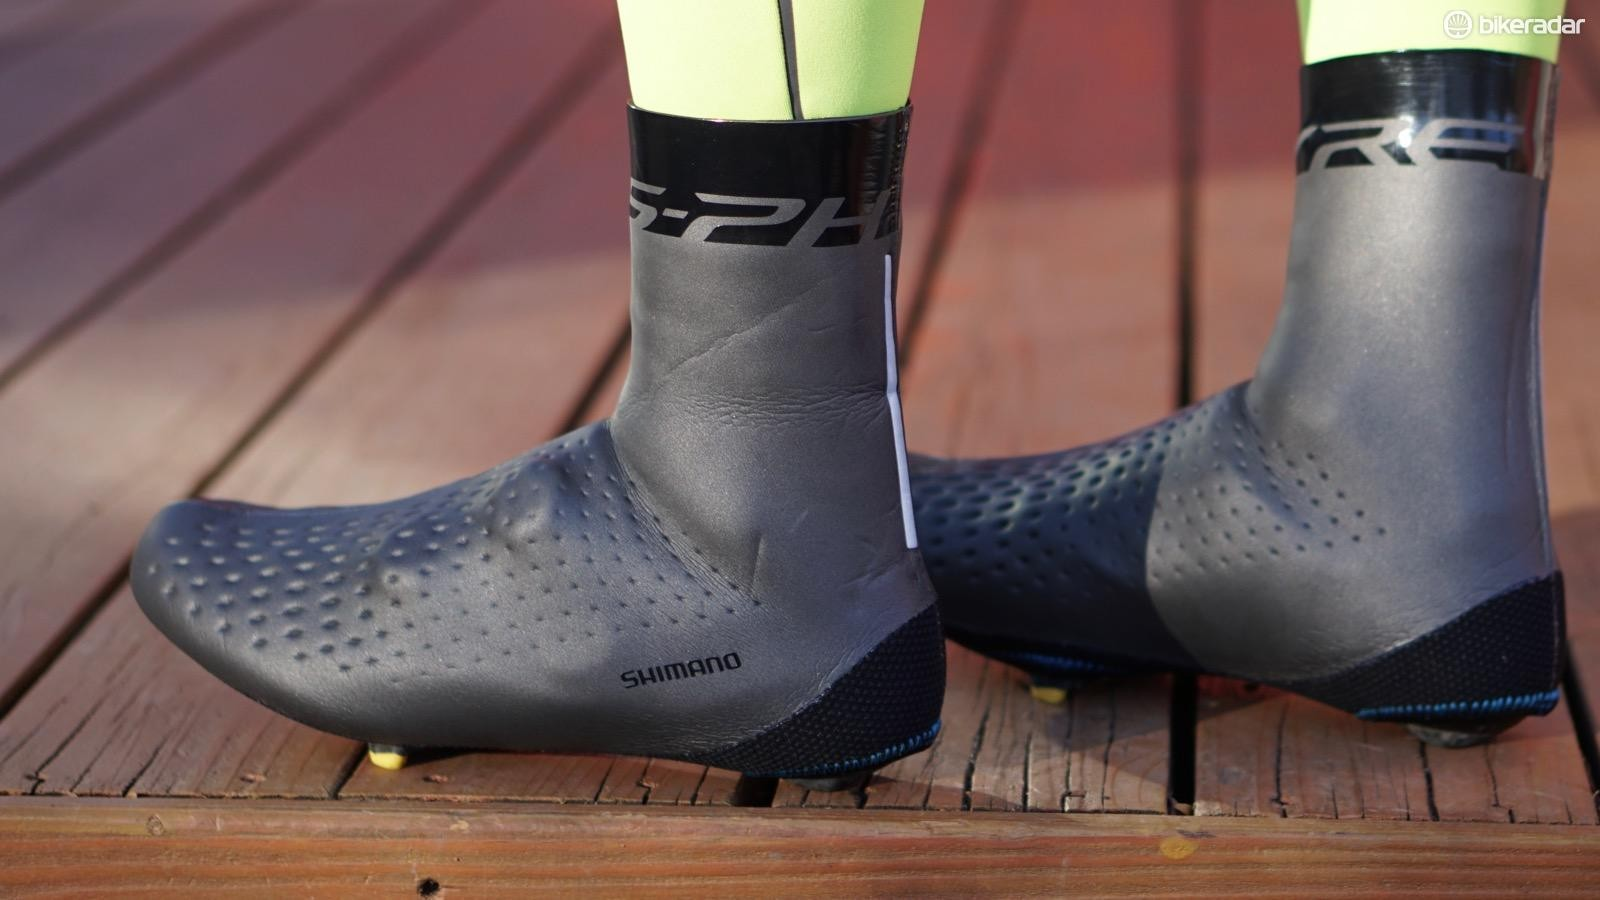 The S-Phyre Shoe Covers are a hyper-flexible neoprene with no zippers or Velcro openings